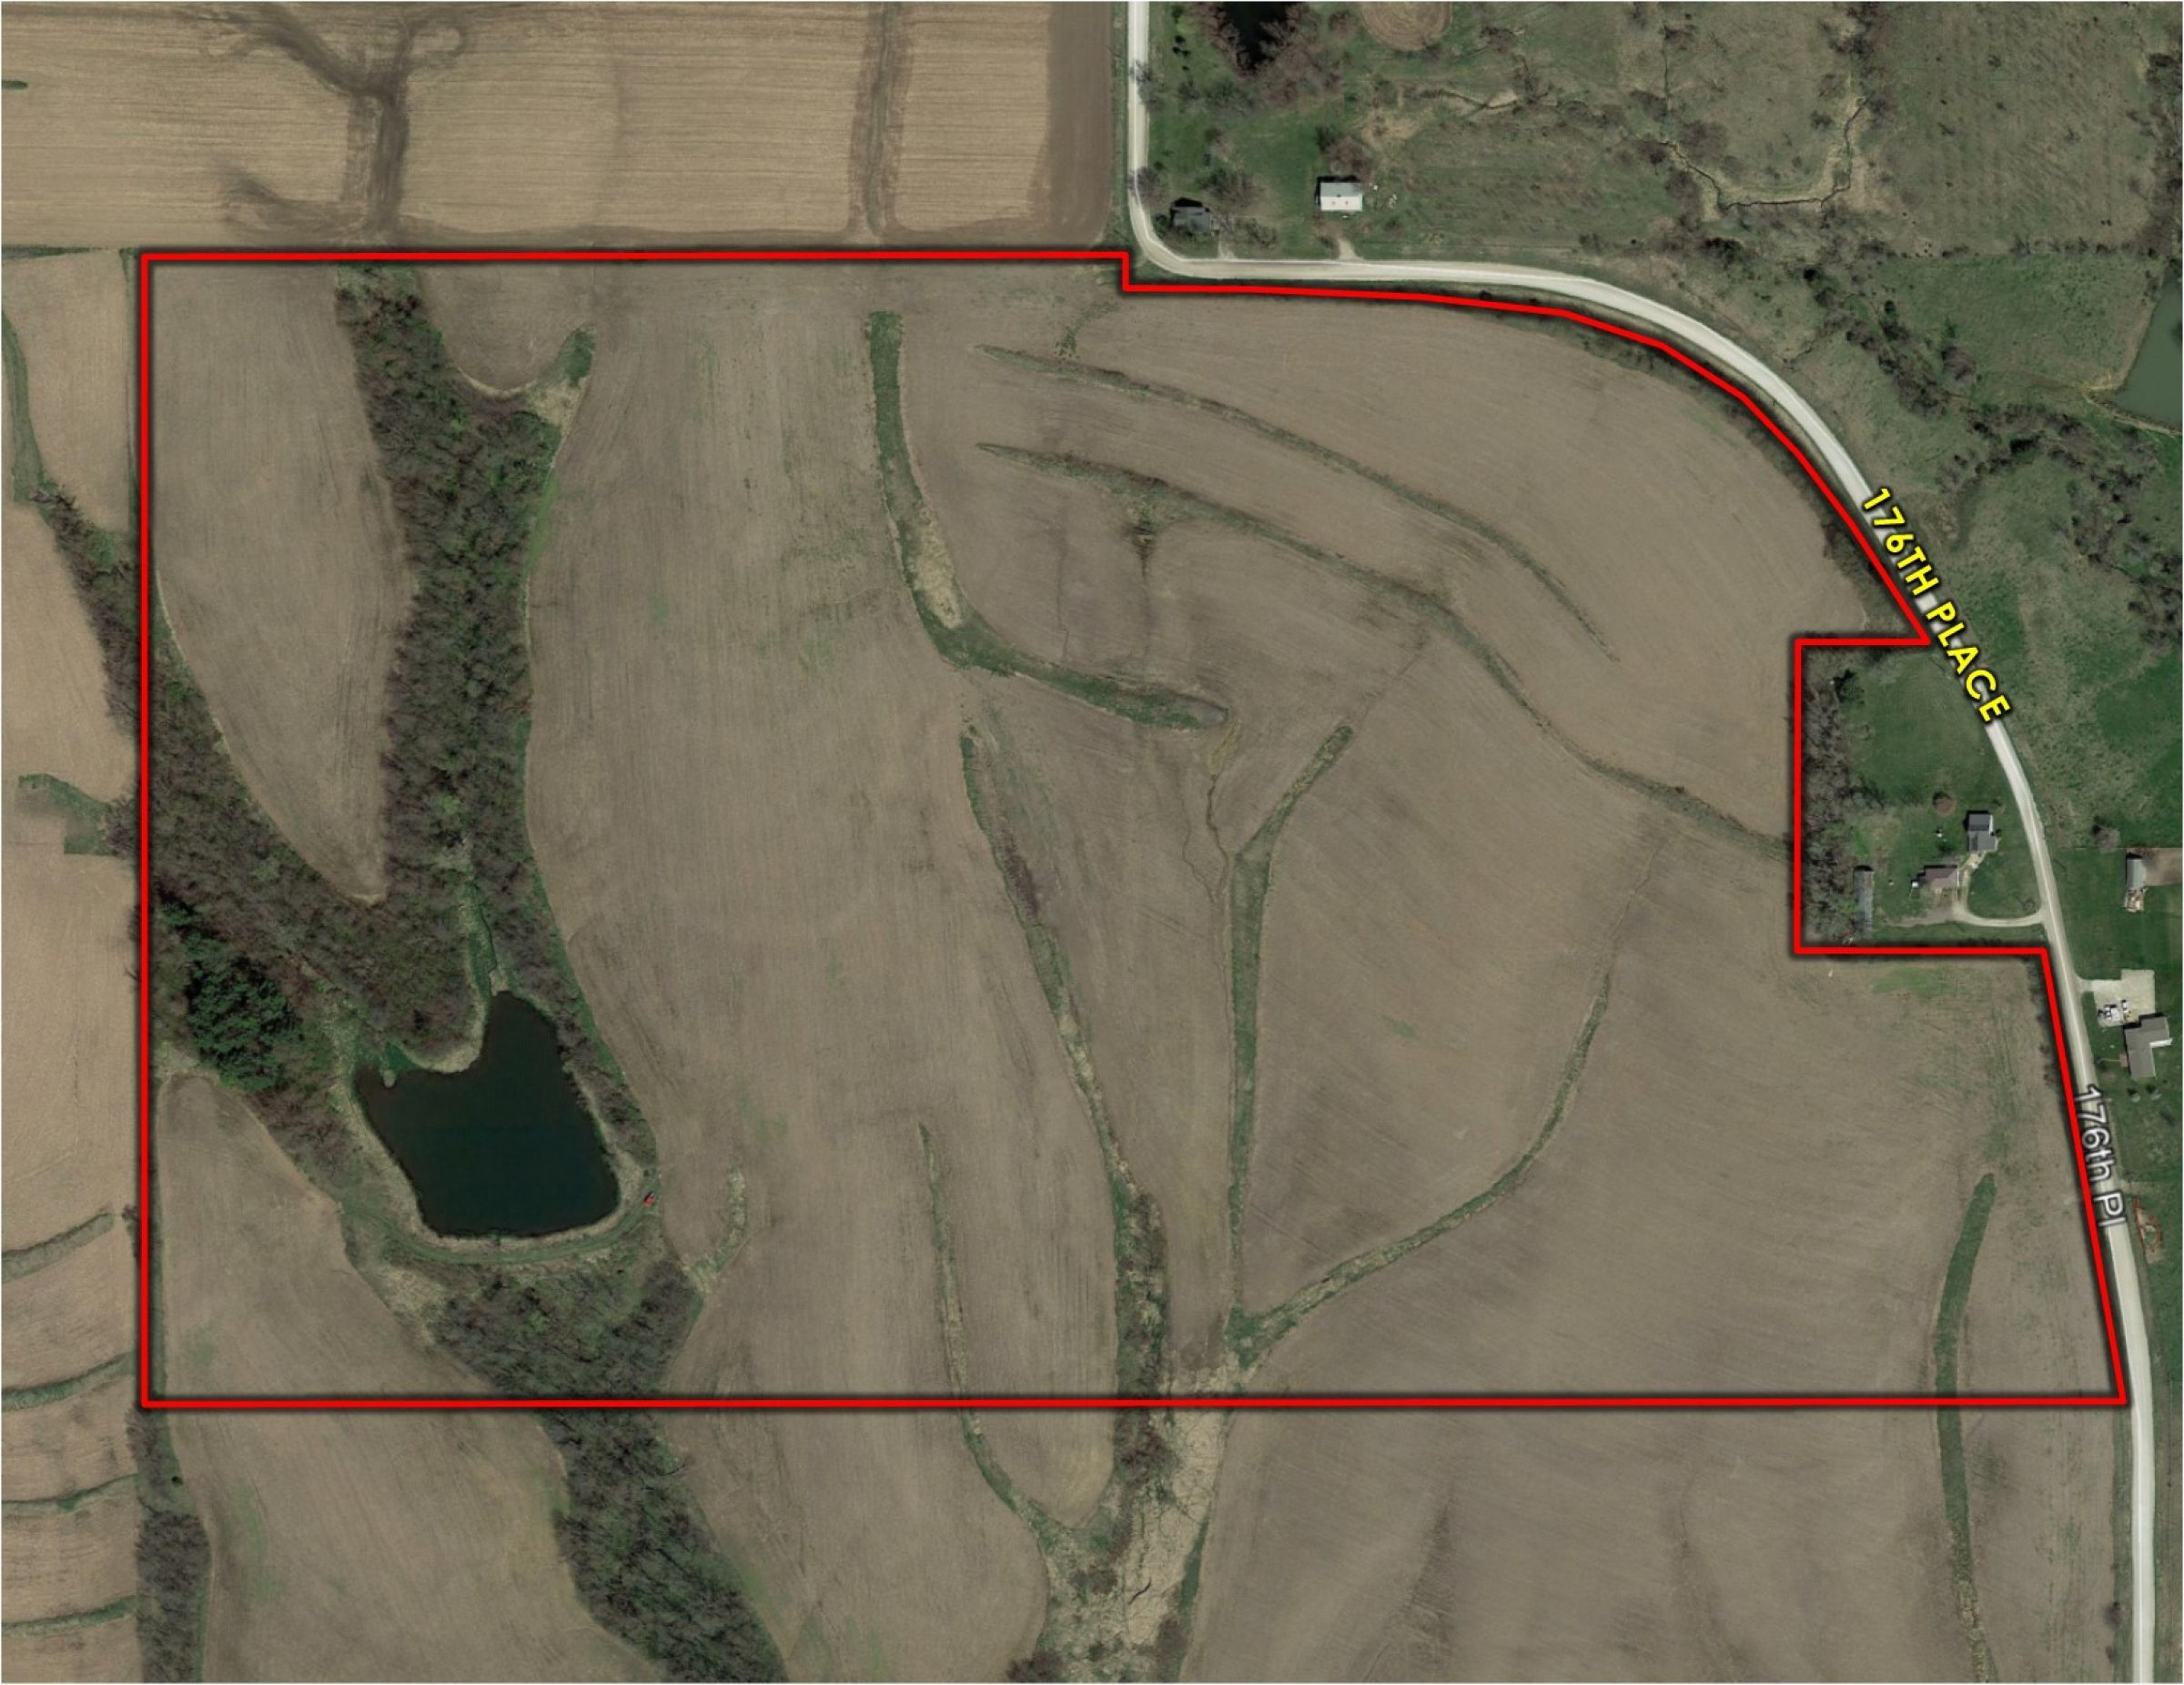 auctions-land-marion-county-iowa-78-acres-listing-number-15197-0-2020-10-06-154849.jpg